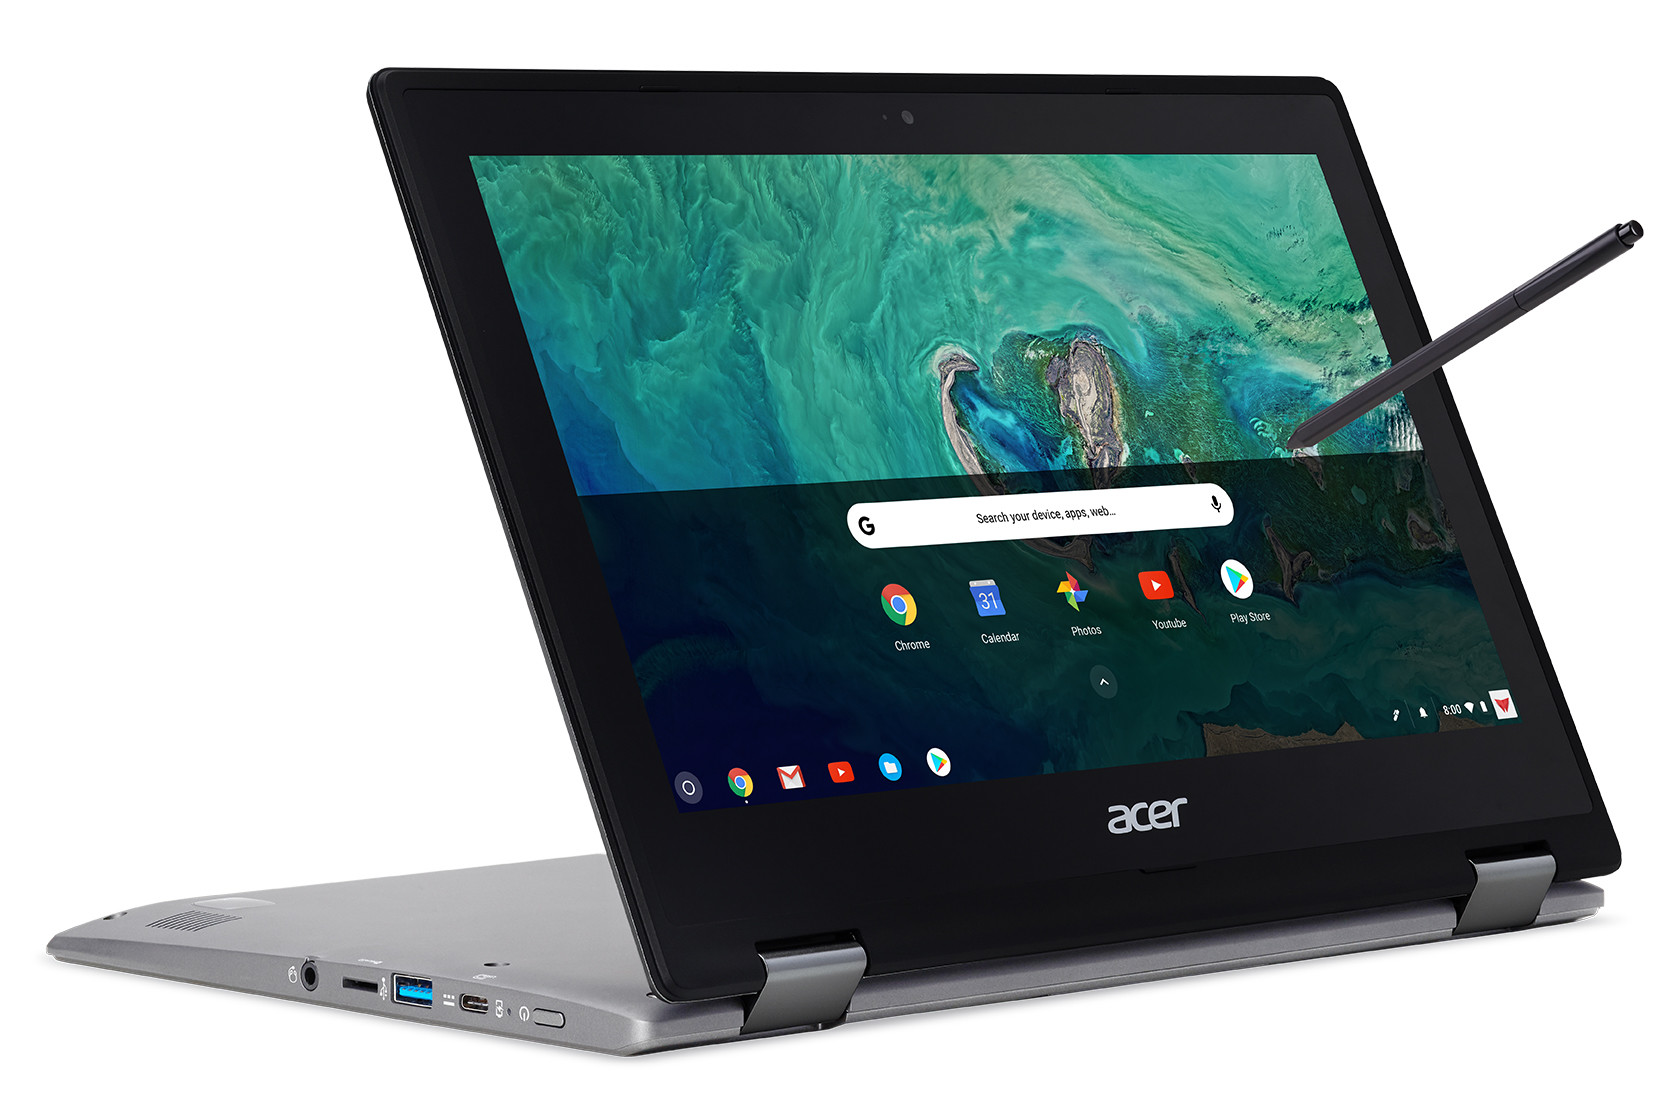 Acer Announces A New Education-Focused Chromebook, Chromebox